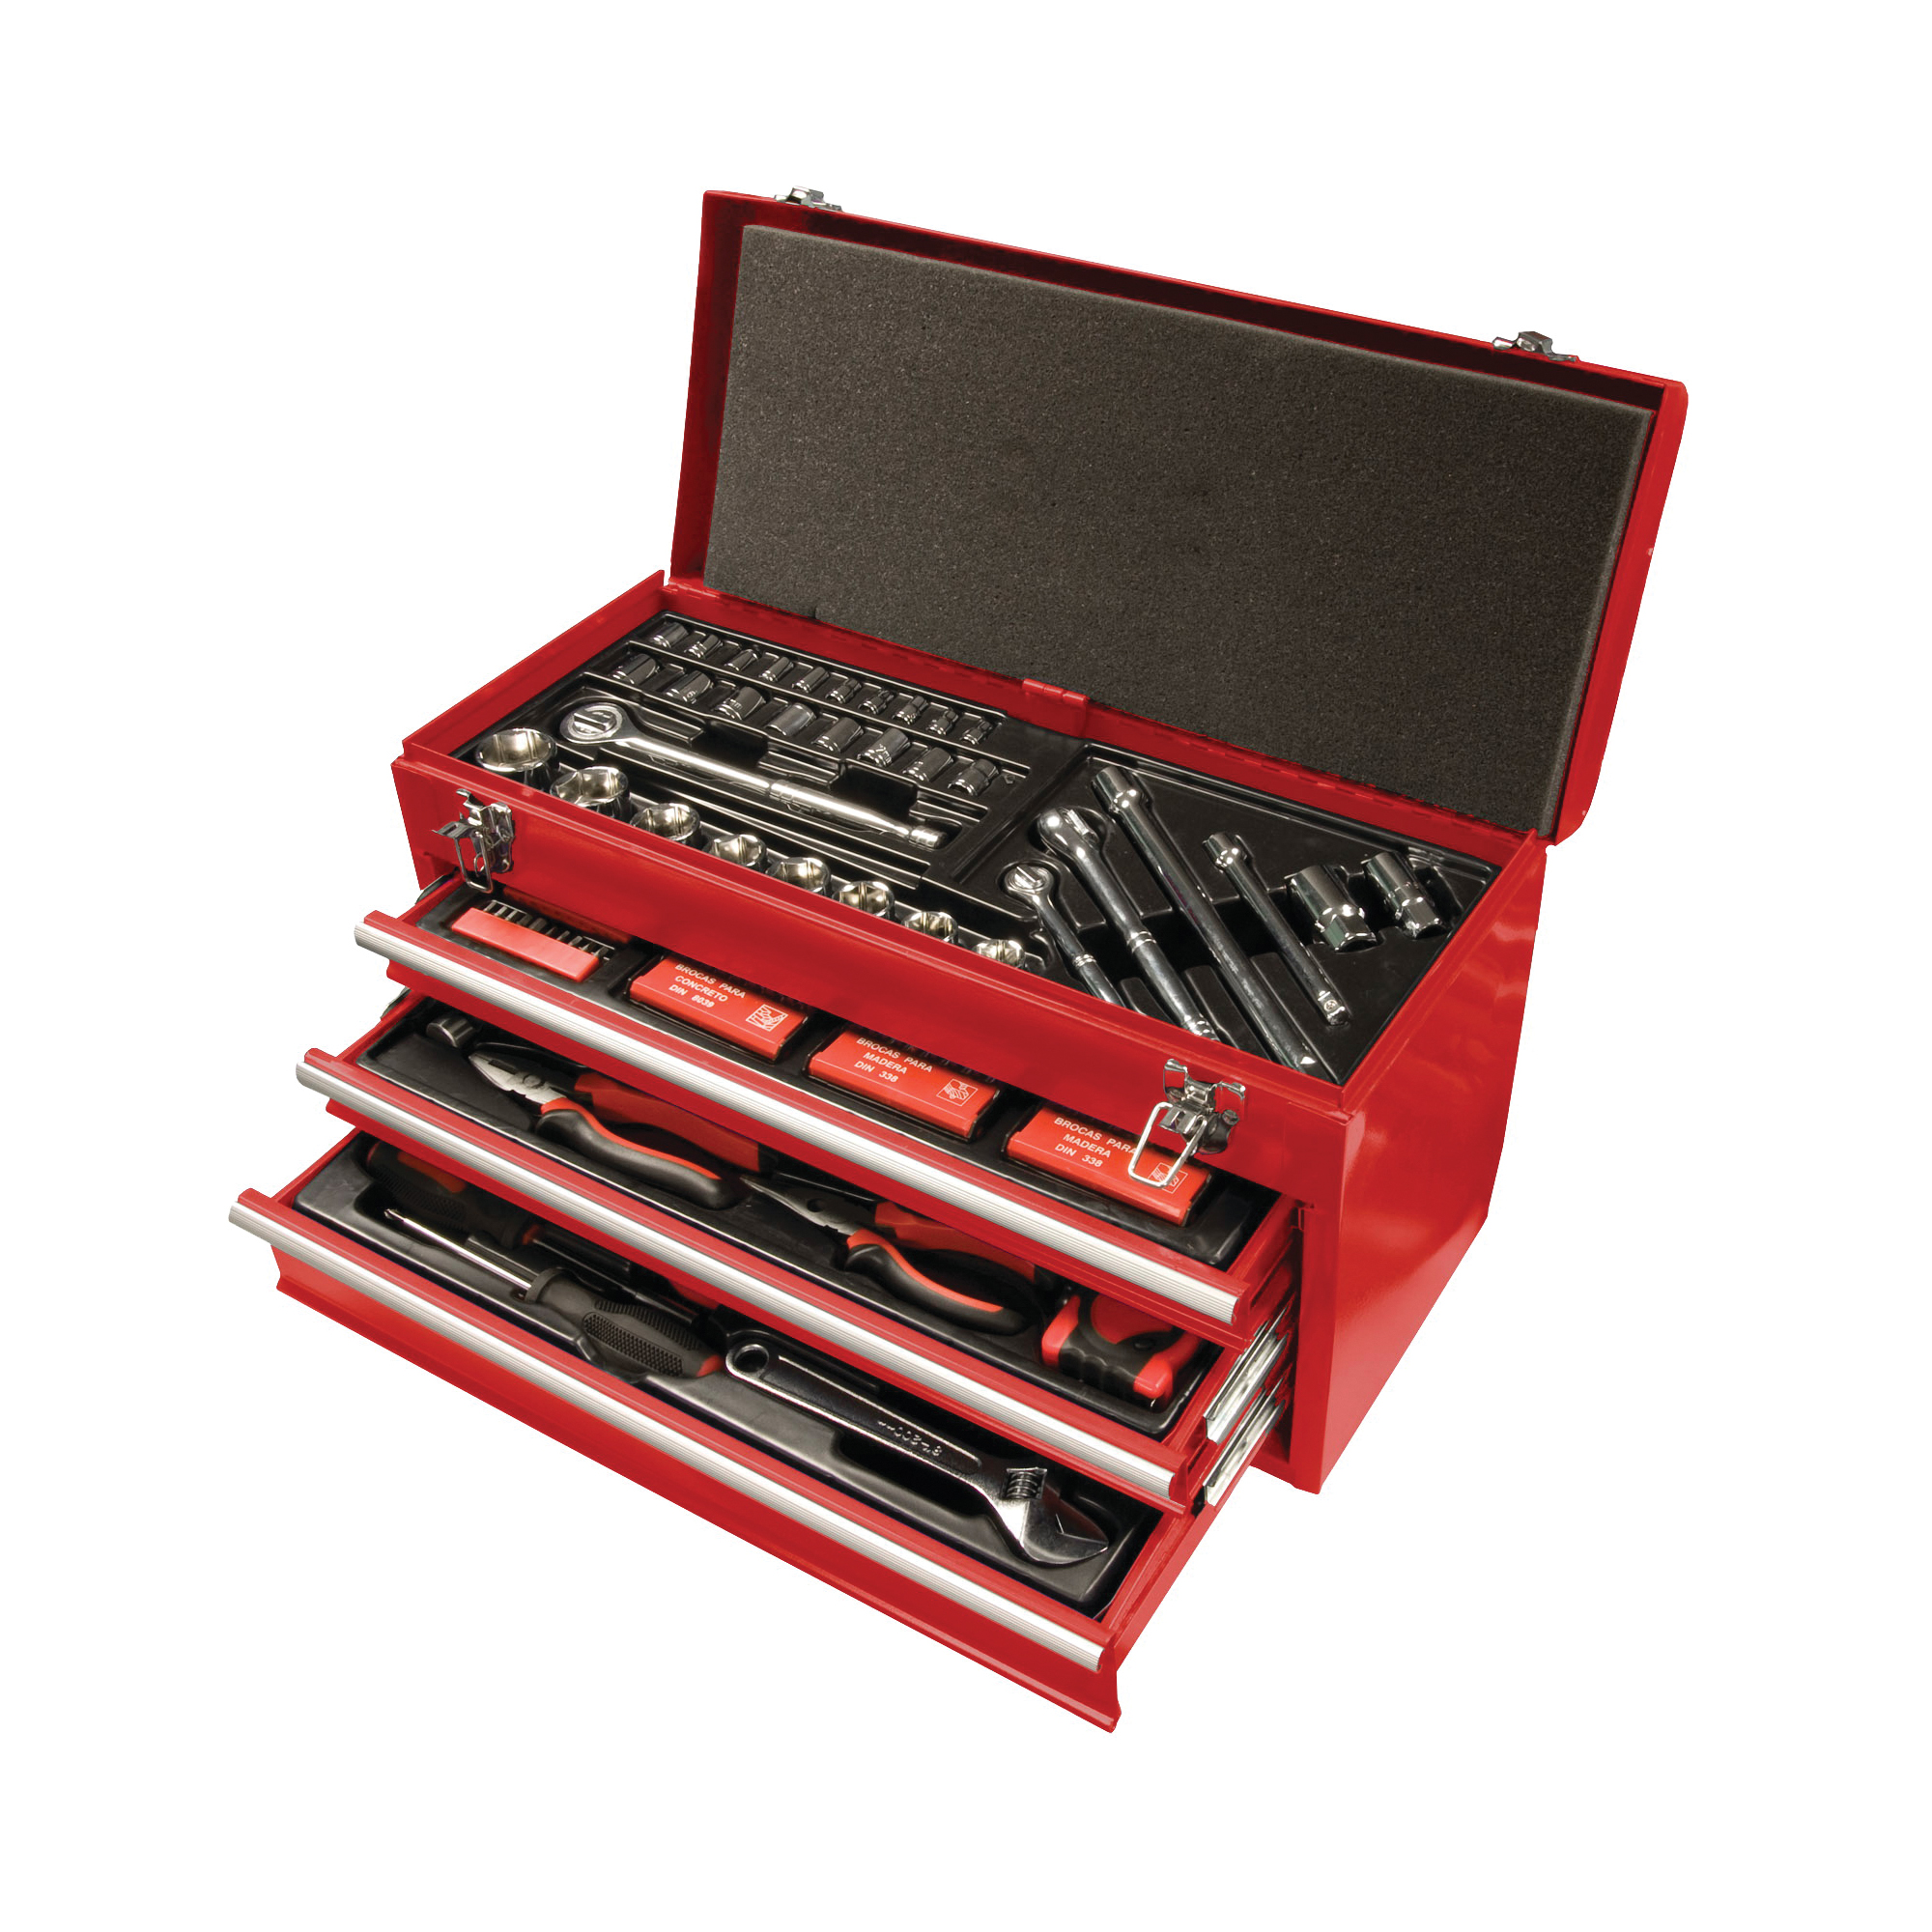 Picture of Speedway 8836 Tool Chest with Bonus Tool Set, 60 lb, 23-1/2 in OAW, 13.8 in OAH, 11.6 in OAD, Steel, Red